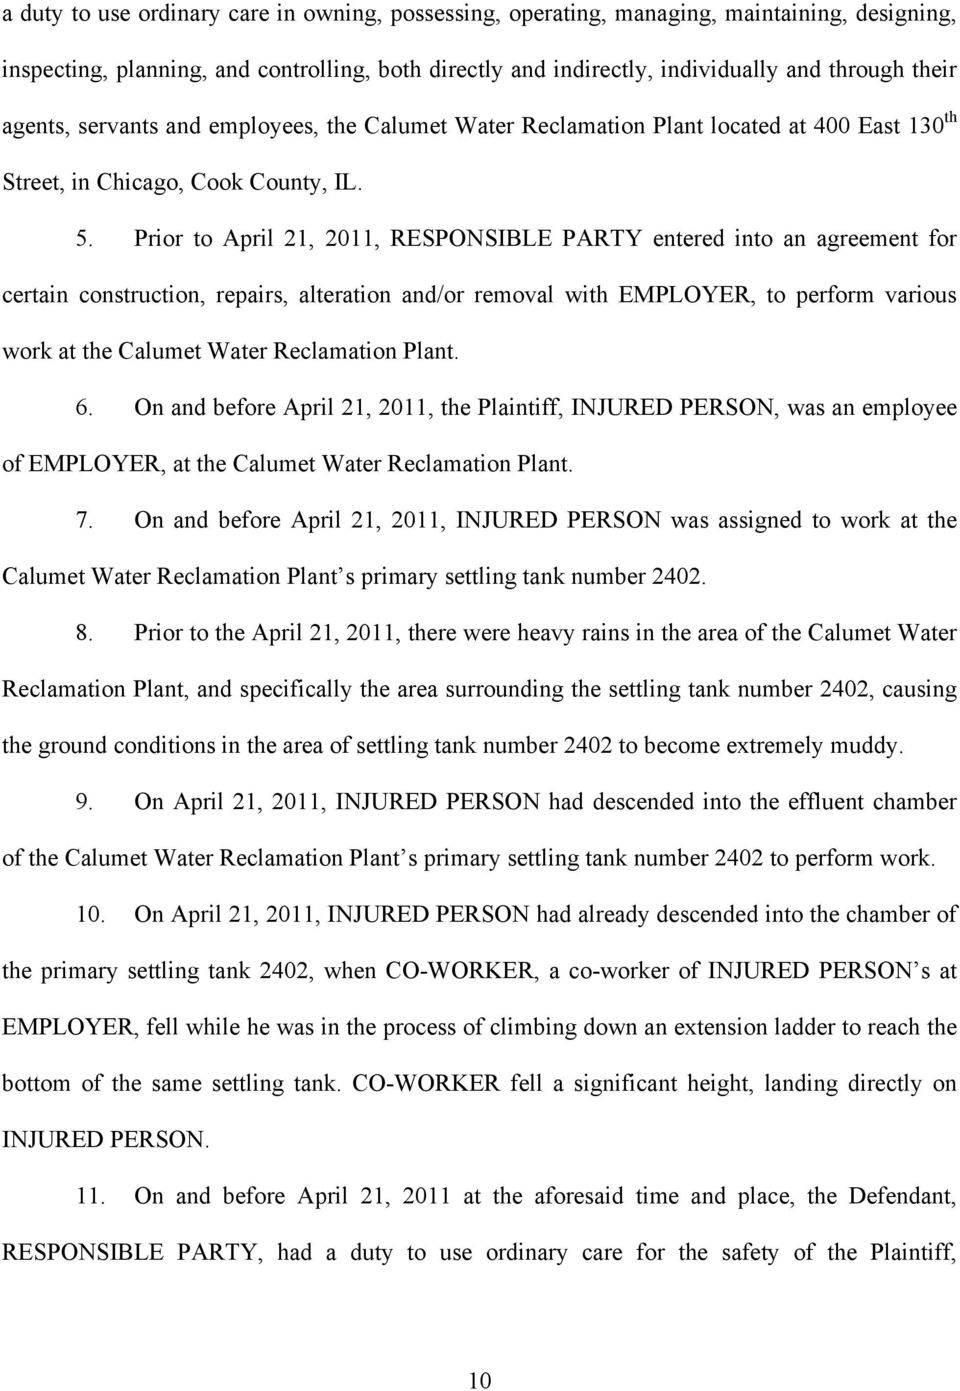 Prior to April 21, 2011, RESPONSIBLE PARTY entered into an agreement for certain construction, repairs, alteration and/or removal with EMPLOYER, to perform various work at the Calumet Water